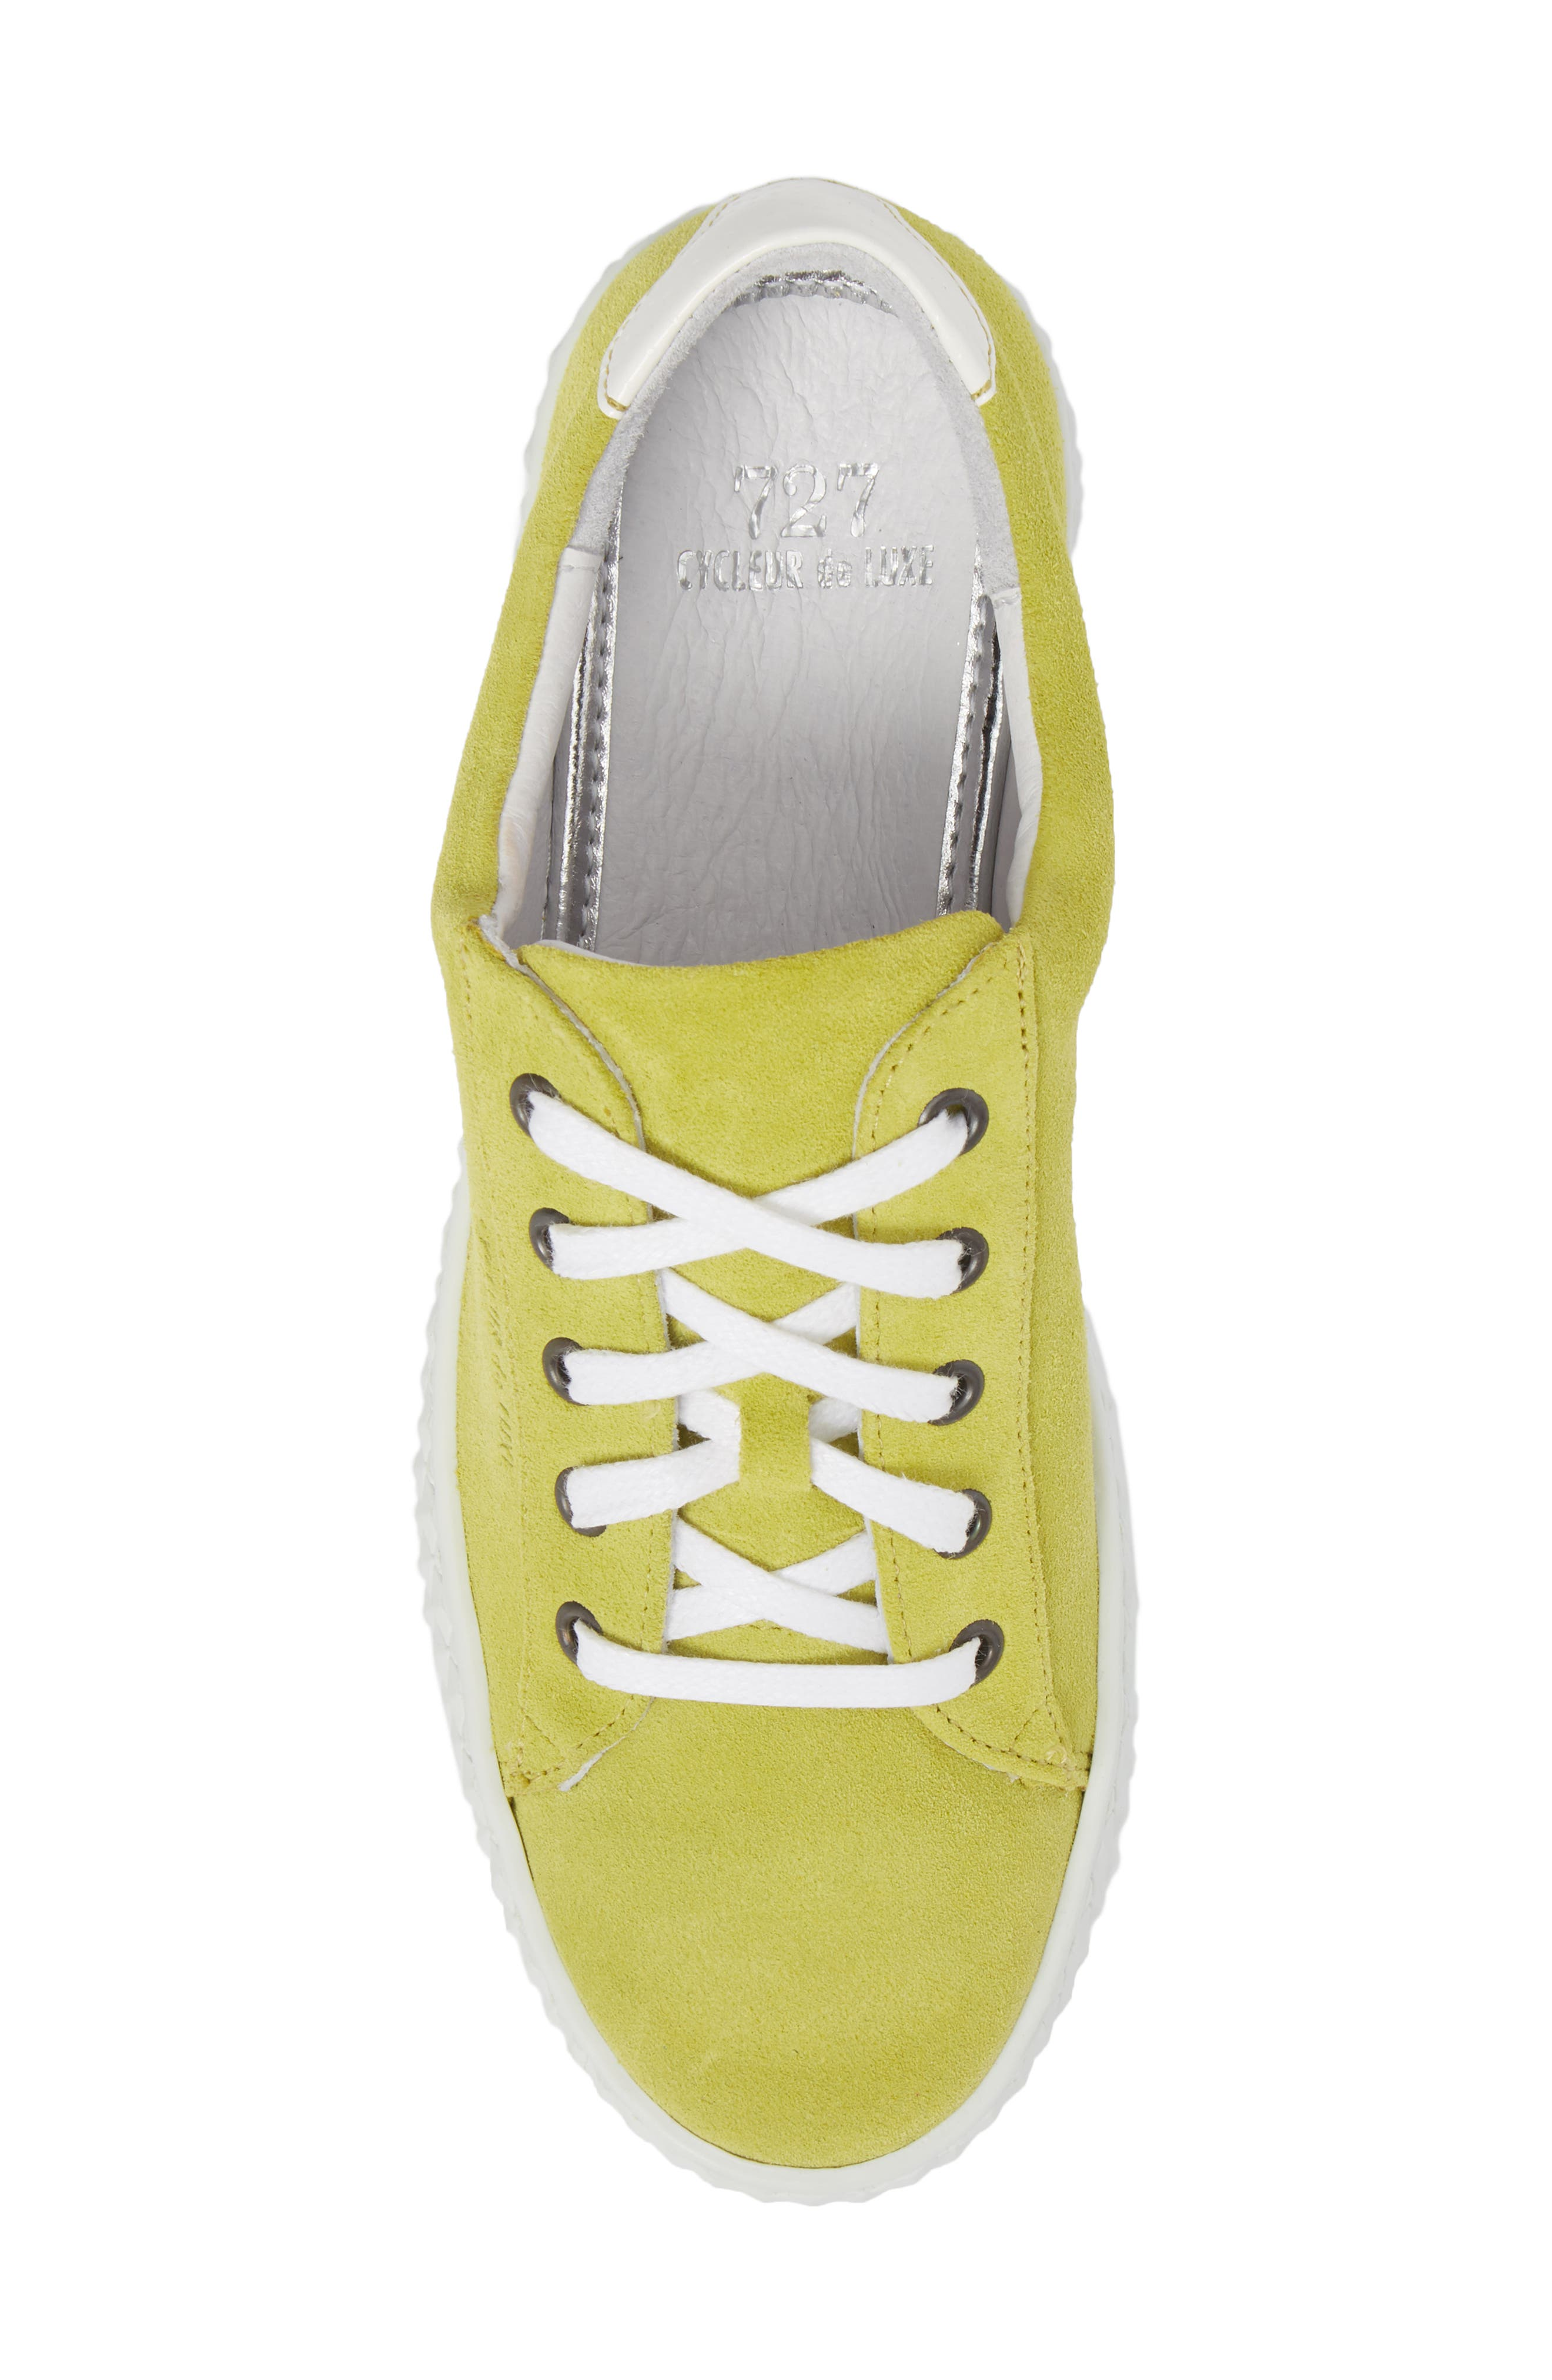 Albufeira Sneaker,                             Alternate thumbnail 5, color,                             Lime/ Optic White Suede